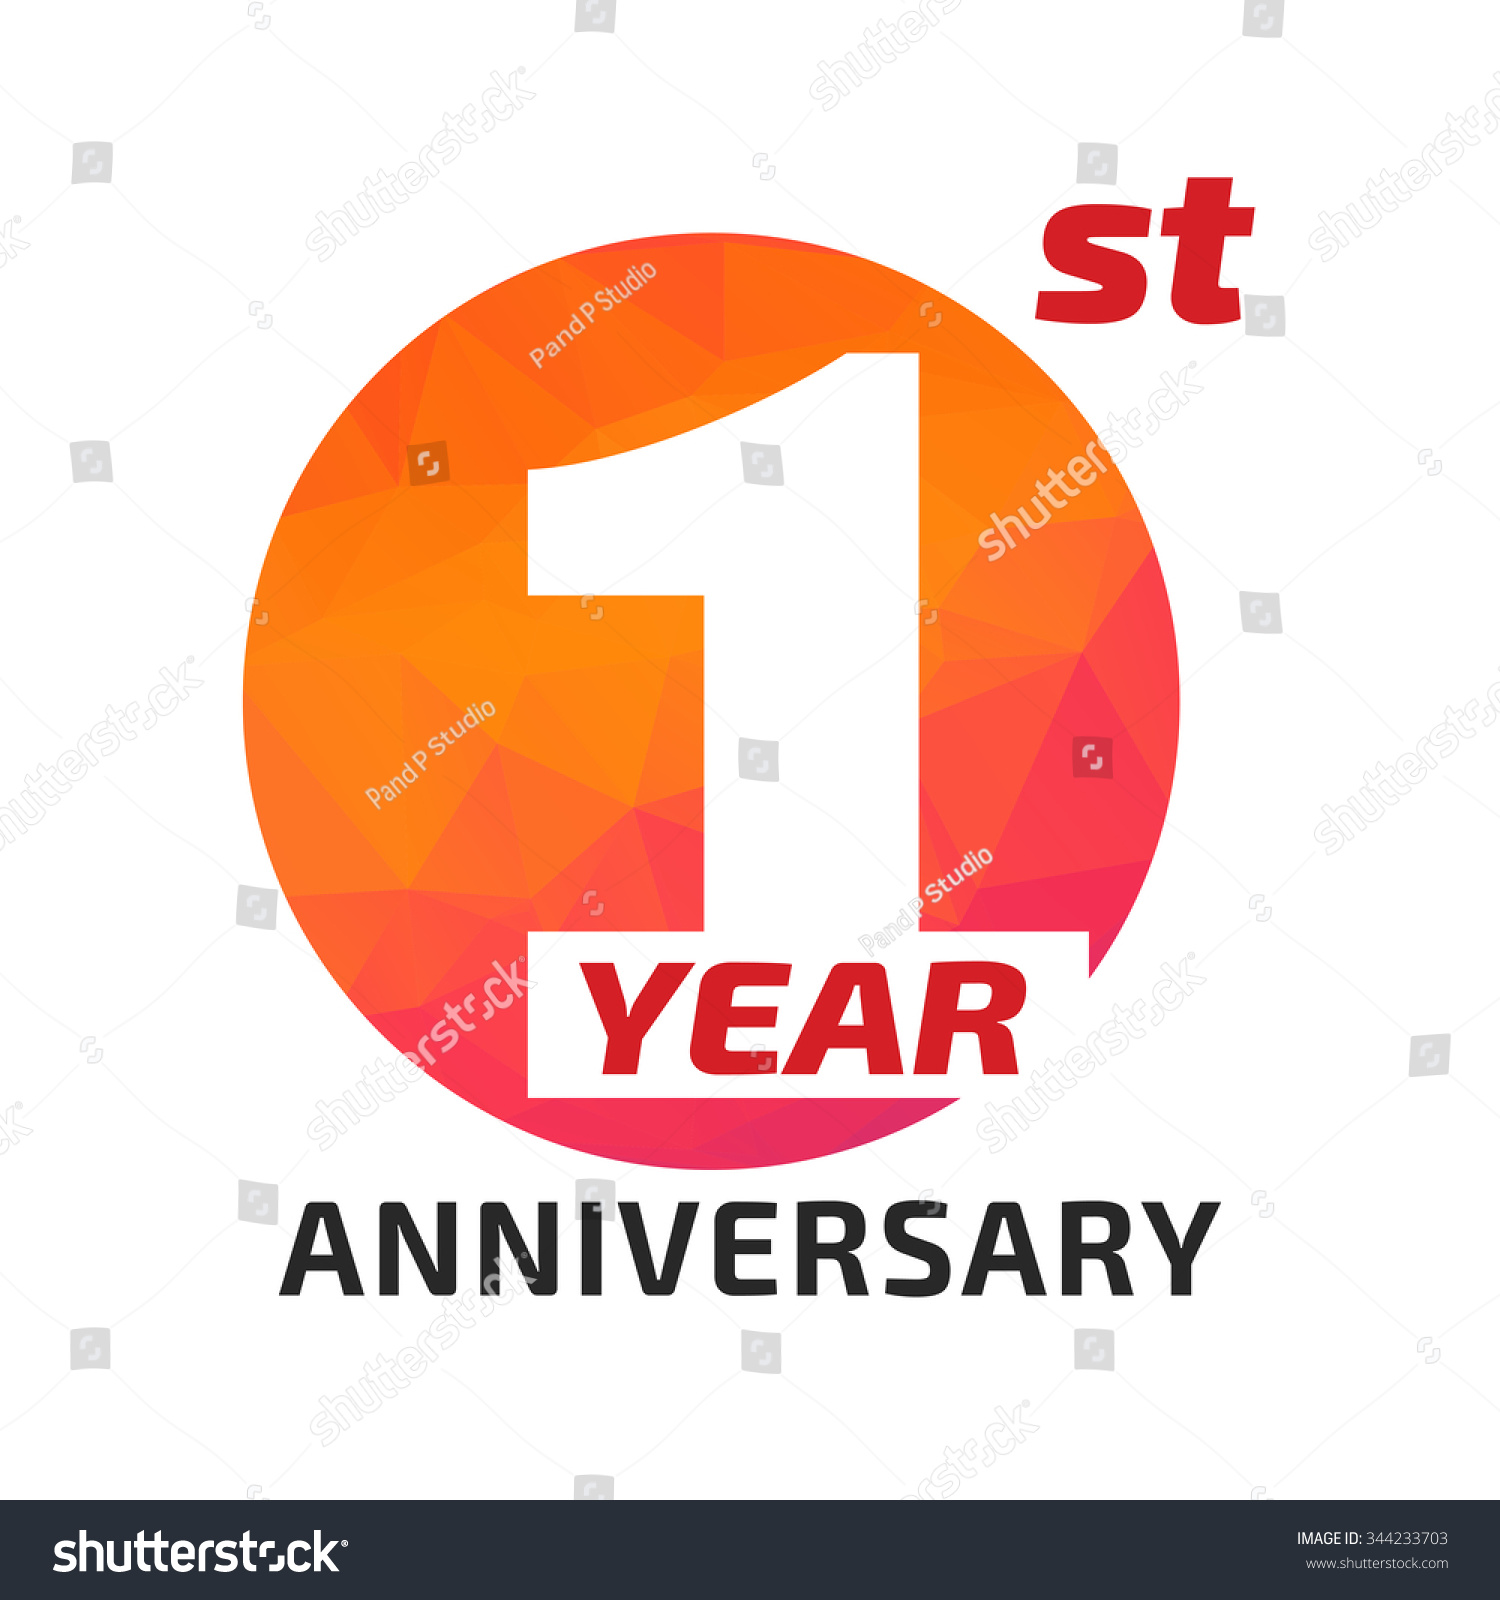 St anniversary logo template circle form stock vector